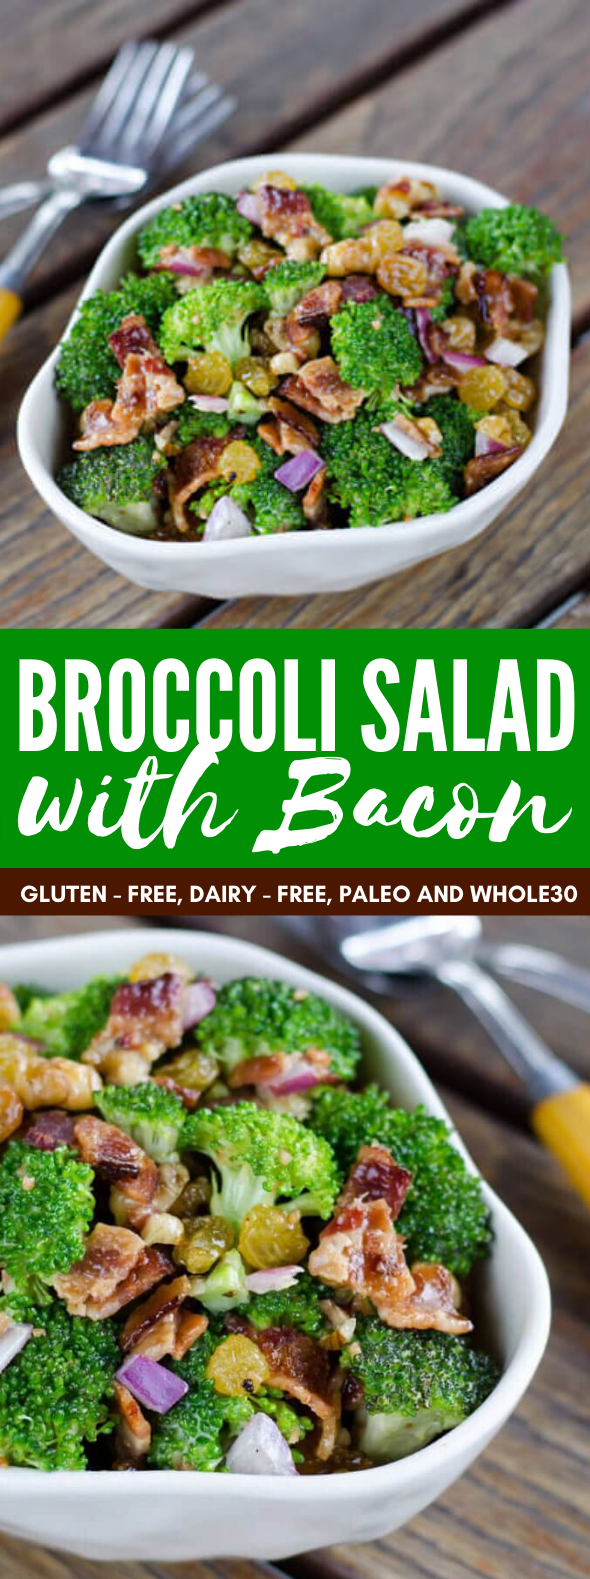 BROCCOLI SALAD WITH BACON (PALEO, WHOLE30, GLUTEN FREE) #healthy #diet